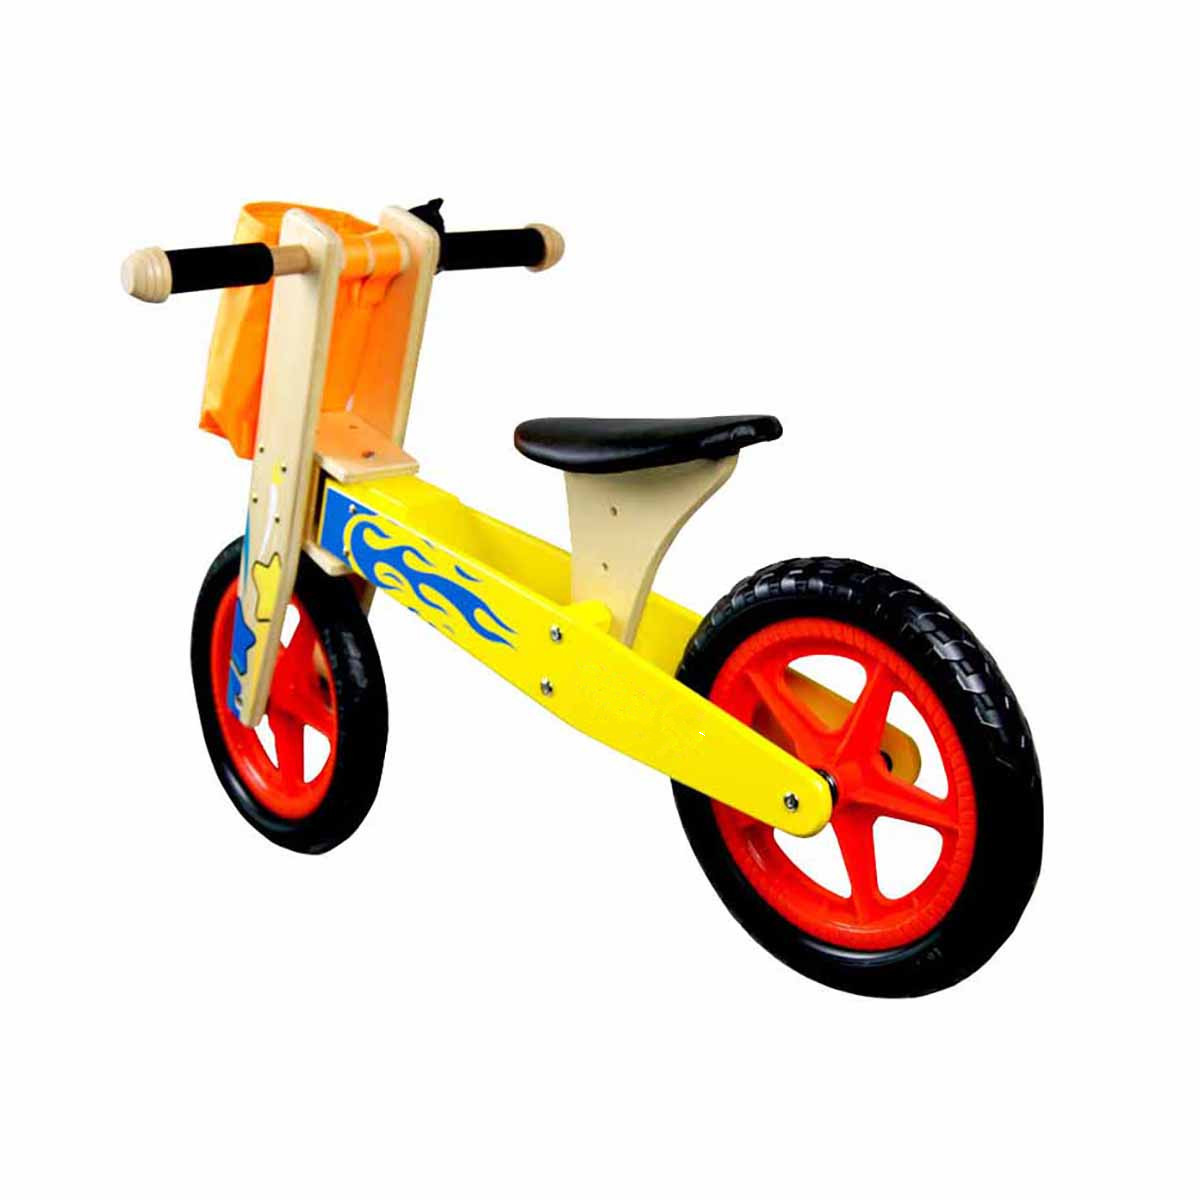 12 Inch Wooden Balance Bike Toddler No Pedals For 1 – 5 Year Old 1